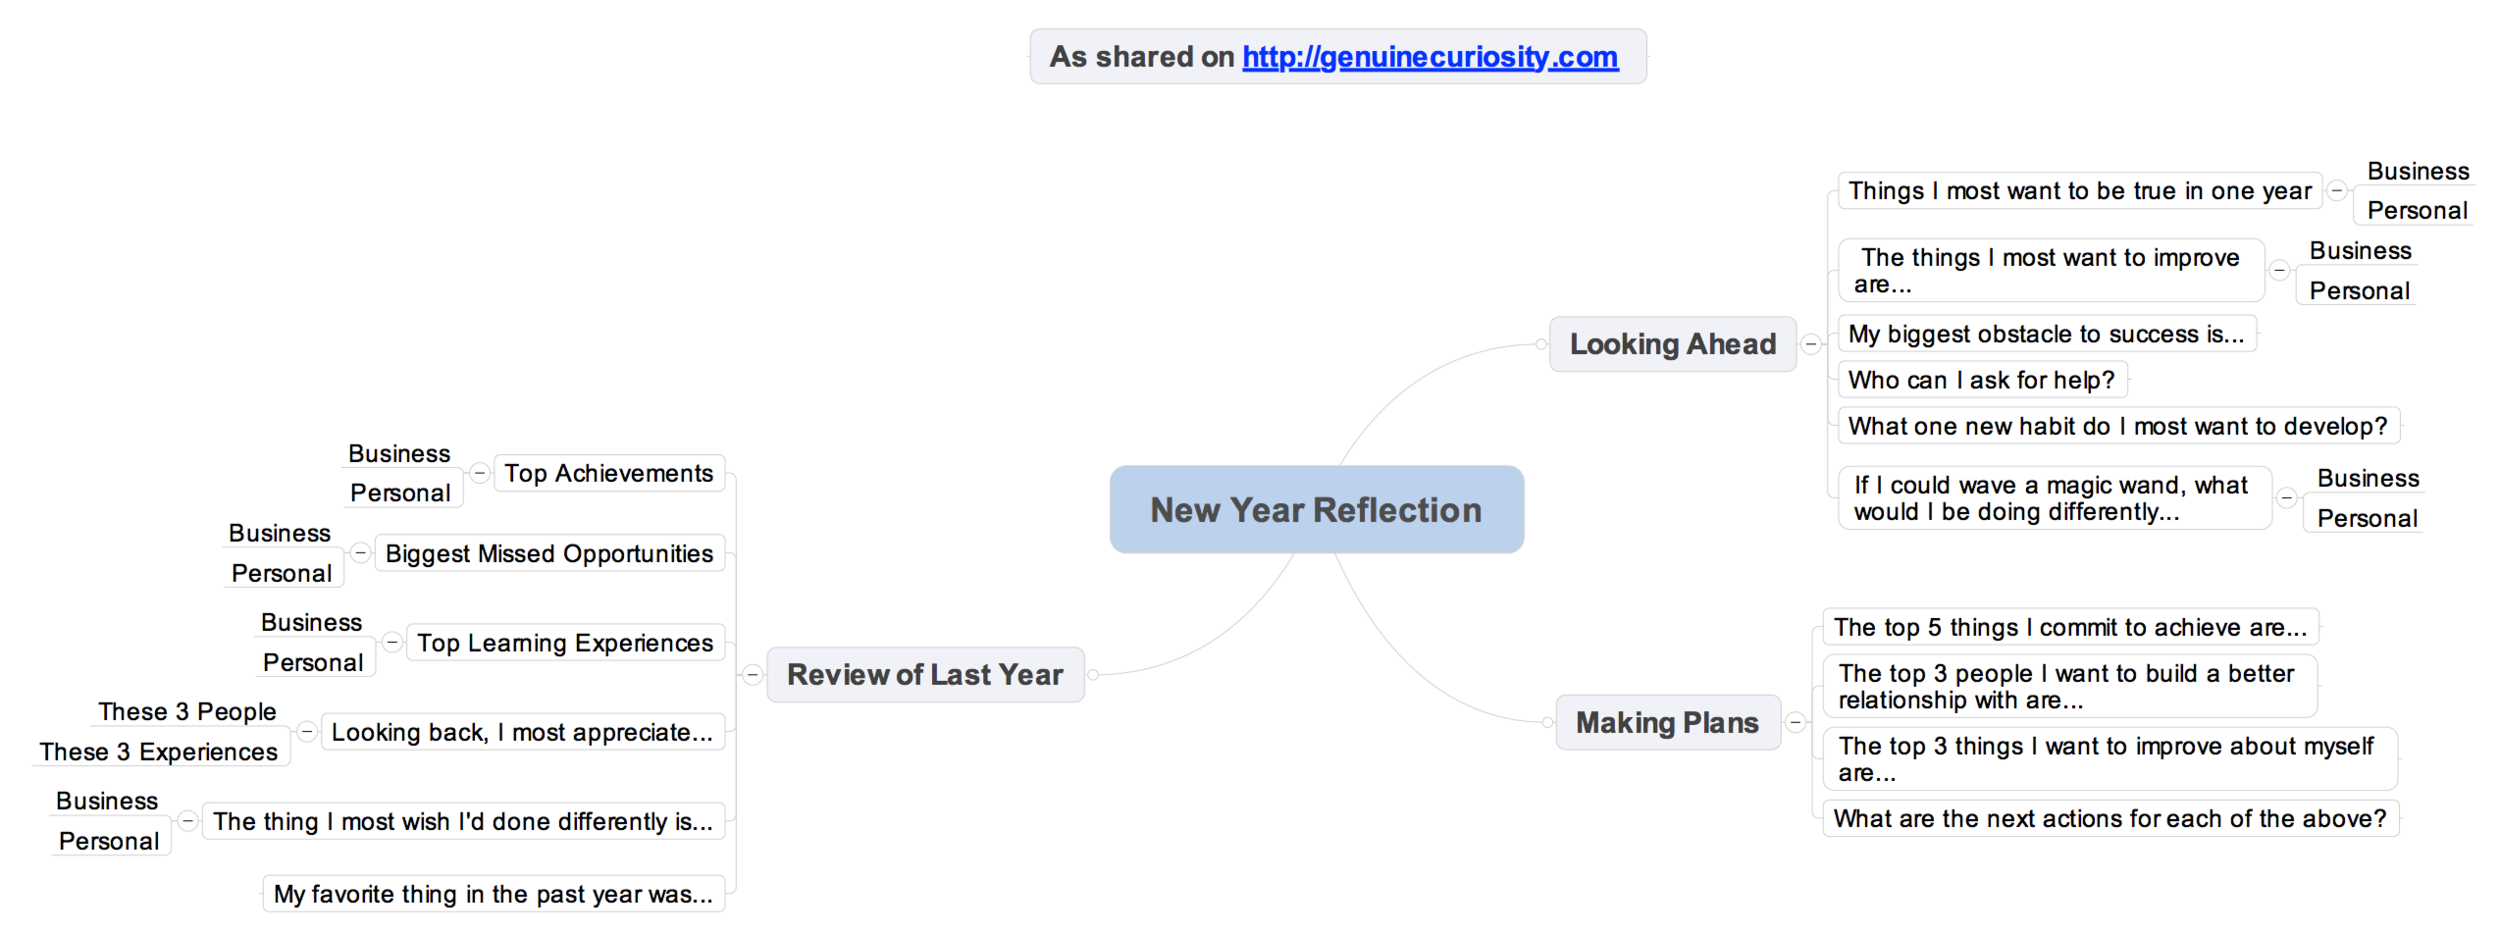 NewYearReflection.png